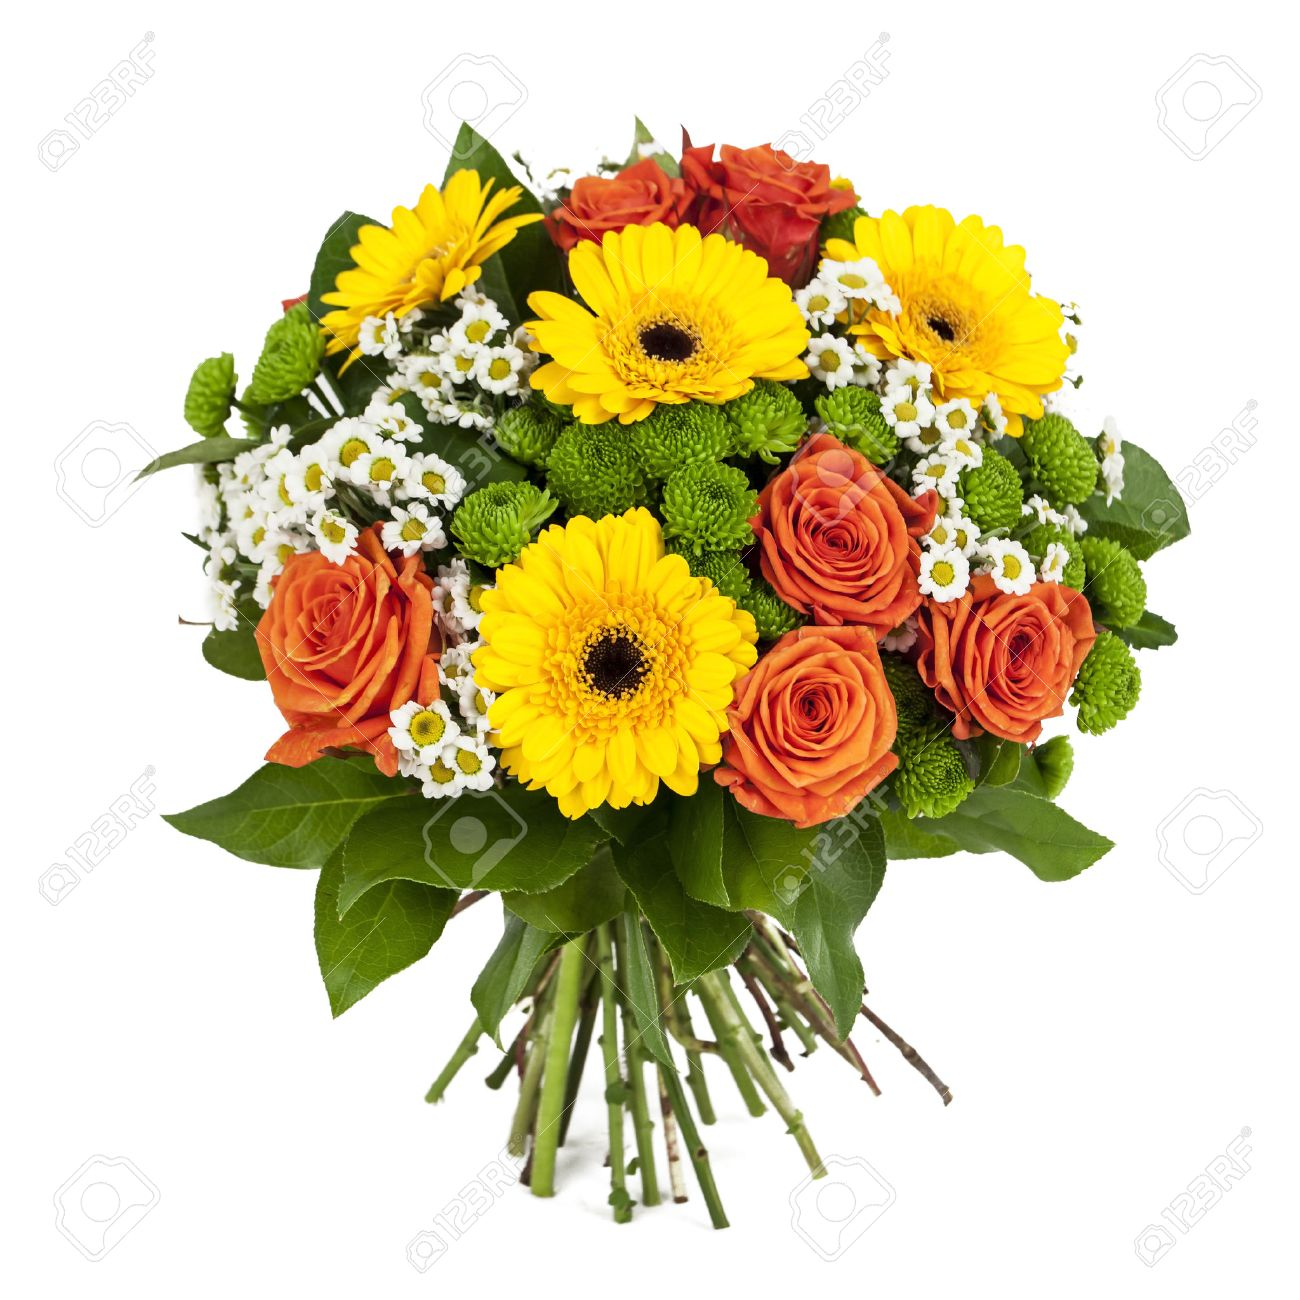 Flowers Bouquet Stock Photos. Royalty Free Flowers Bouquet Images